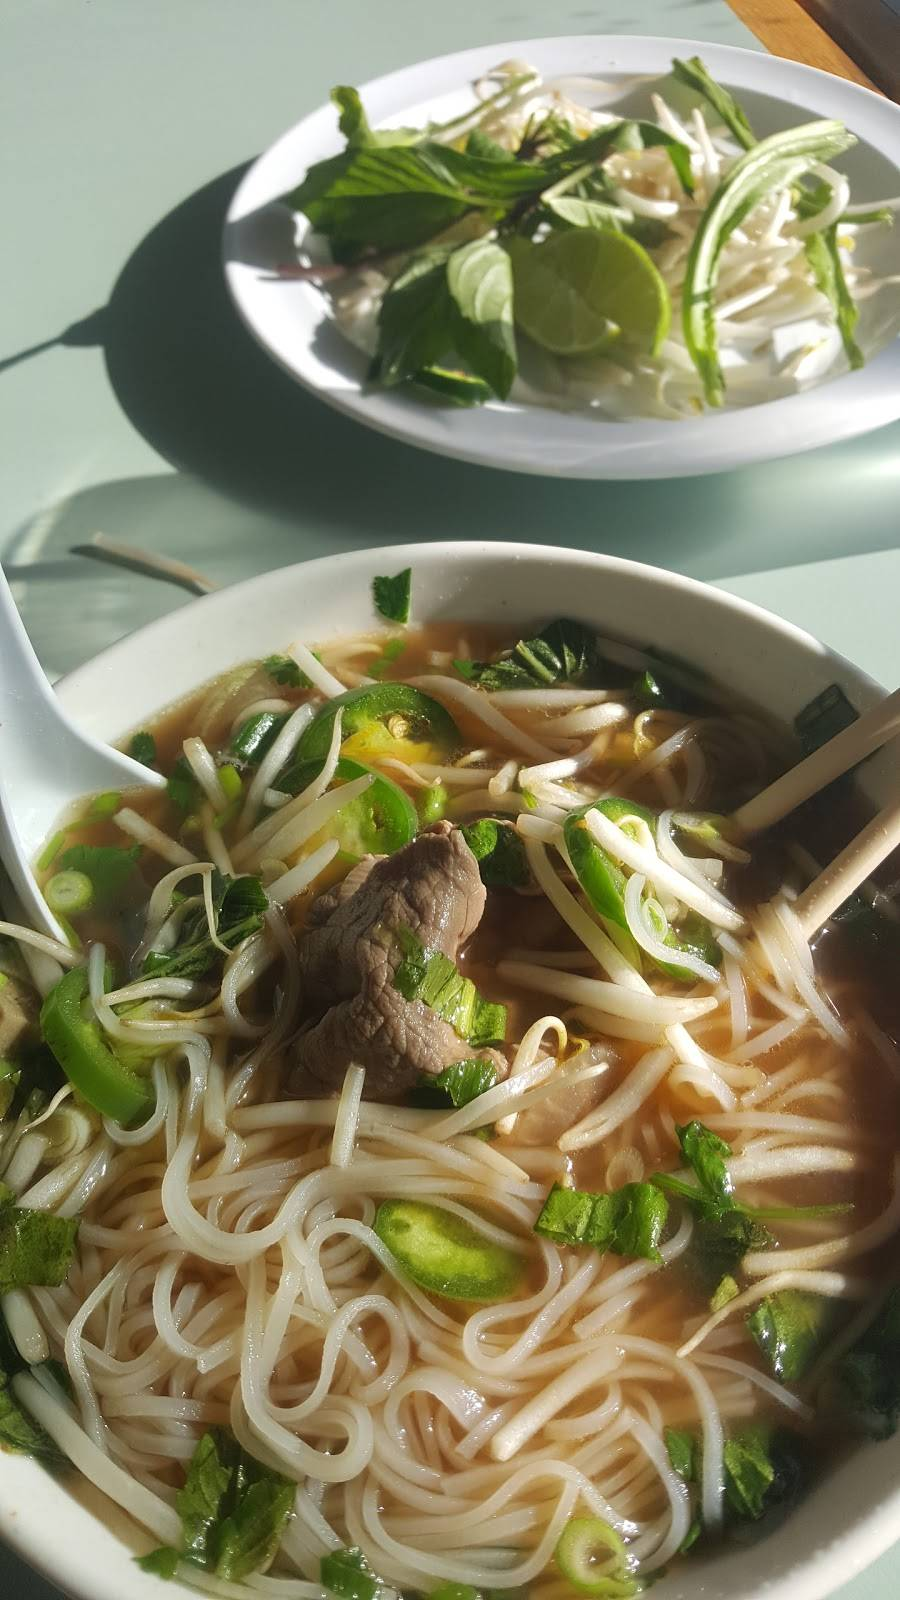 Pho 3 Mien Restaurant 314 S 10th St Lemoyne Pa 17043 Usa